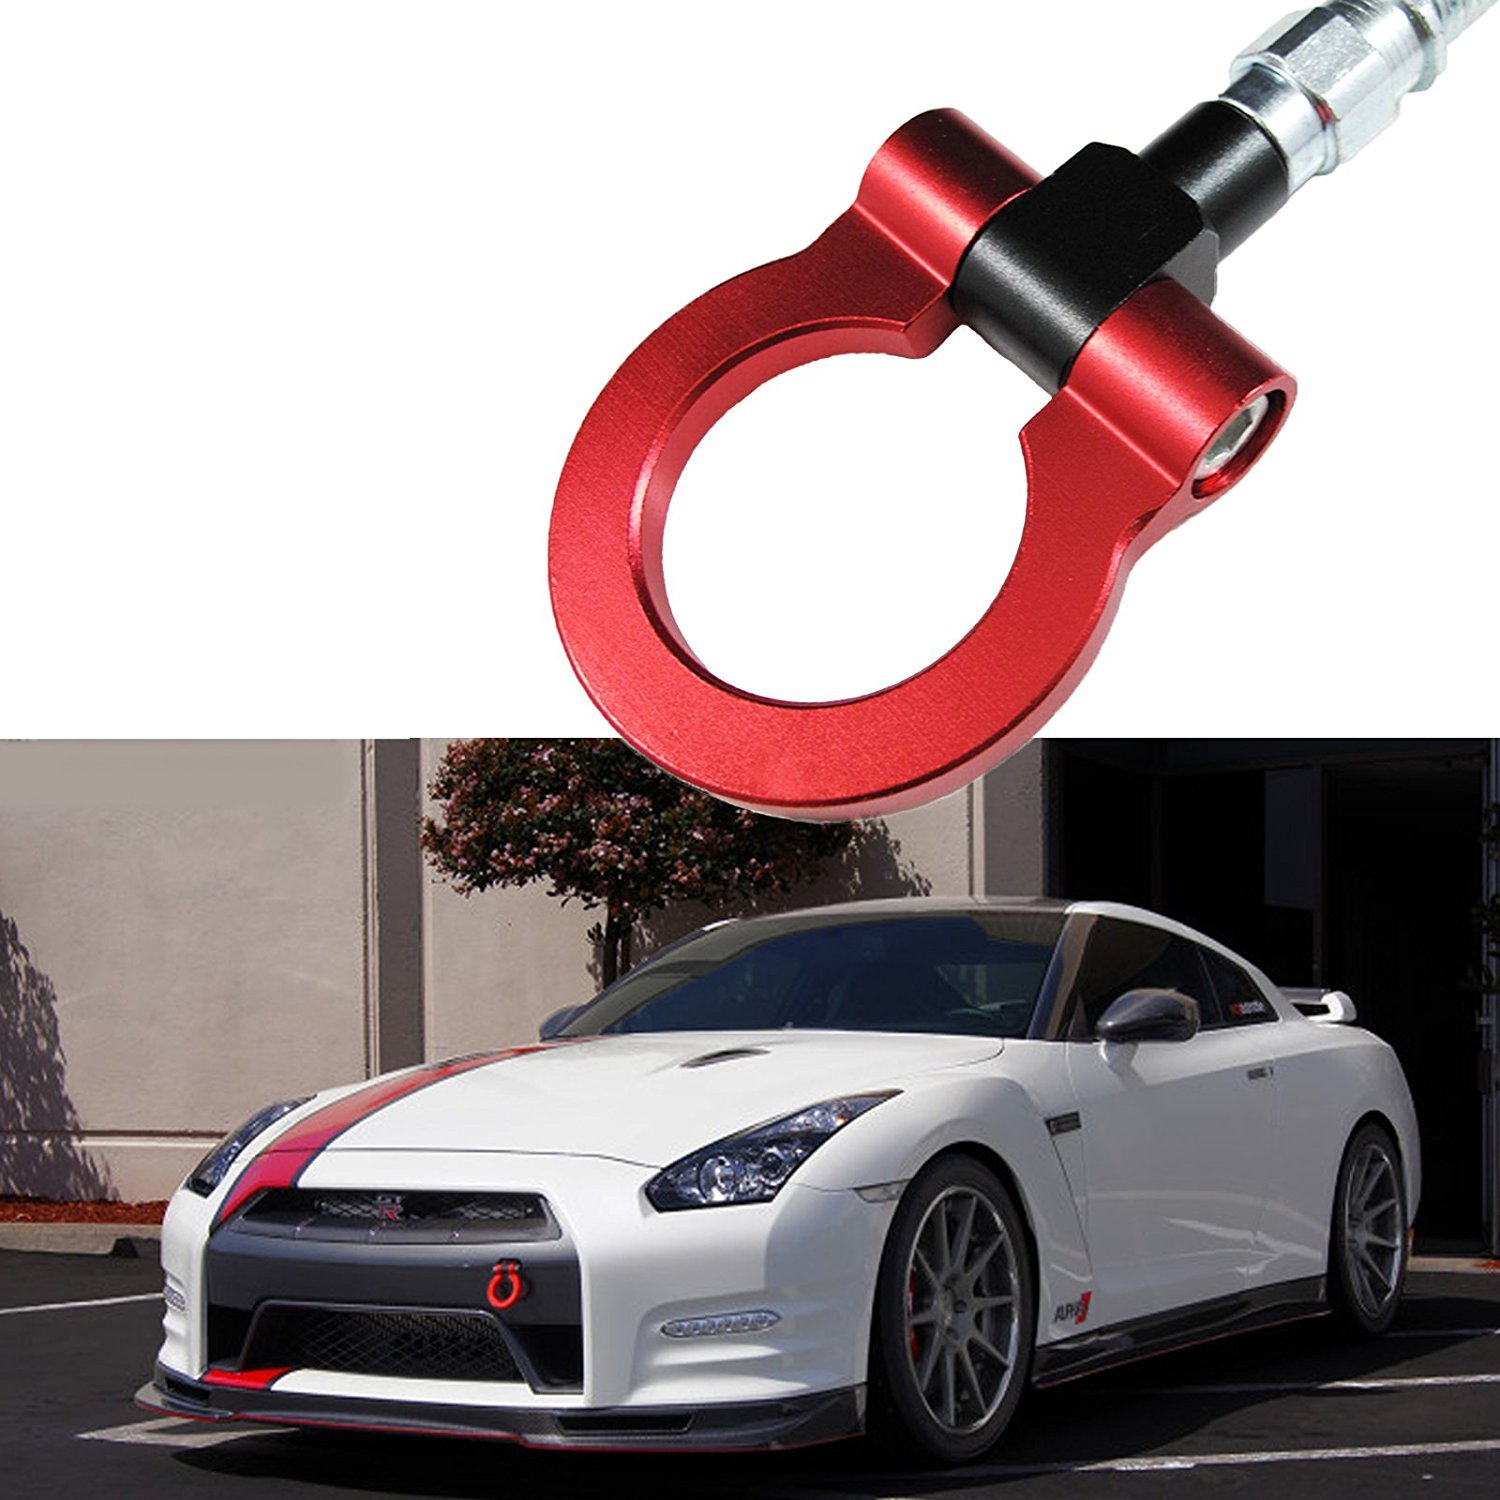 Gold MG Pro-industry Heavy Duty Front /& Rear Bumper Screw on Track Racing Tow Hook for Infiniti G35 G37 Q50L Q60L